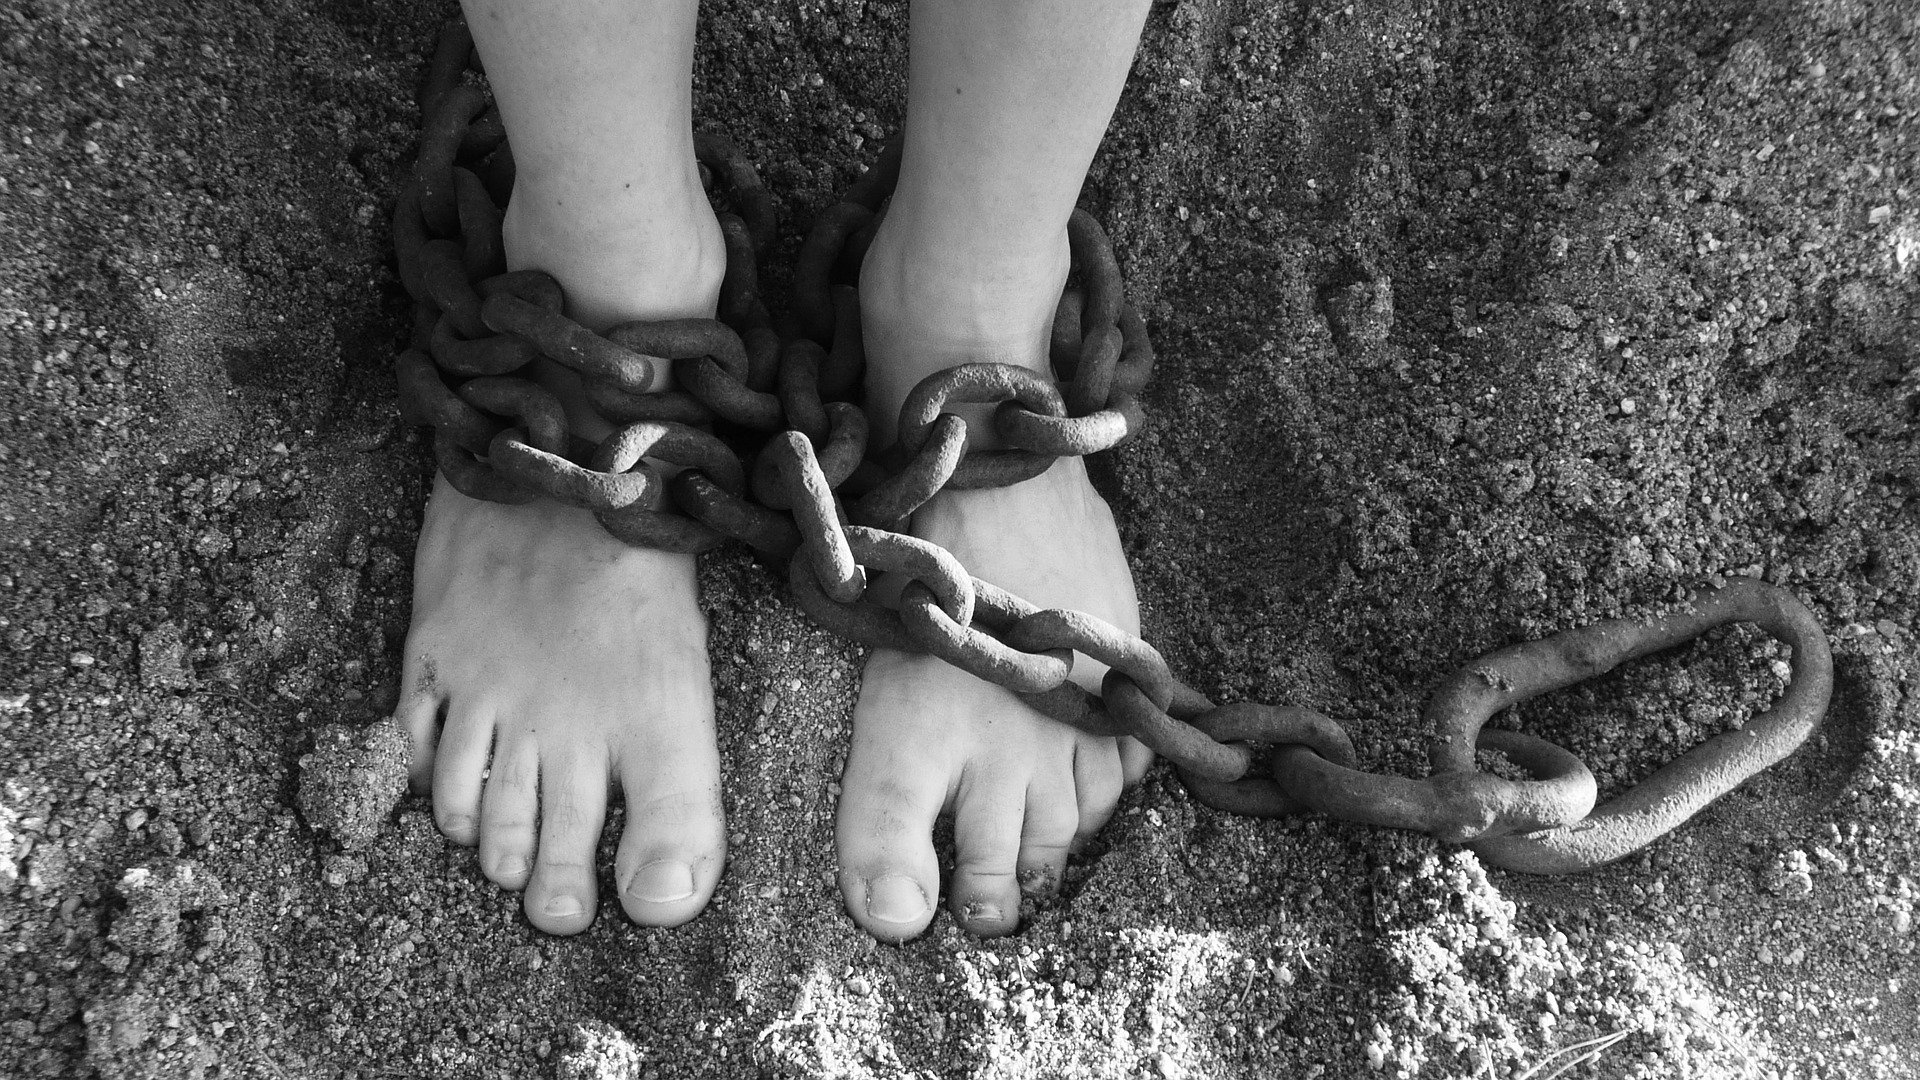 a lack of empowerment depicted by chains on feet.